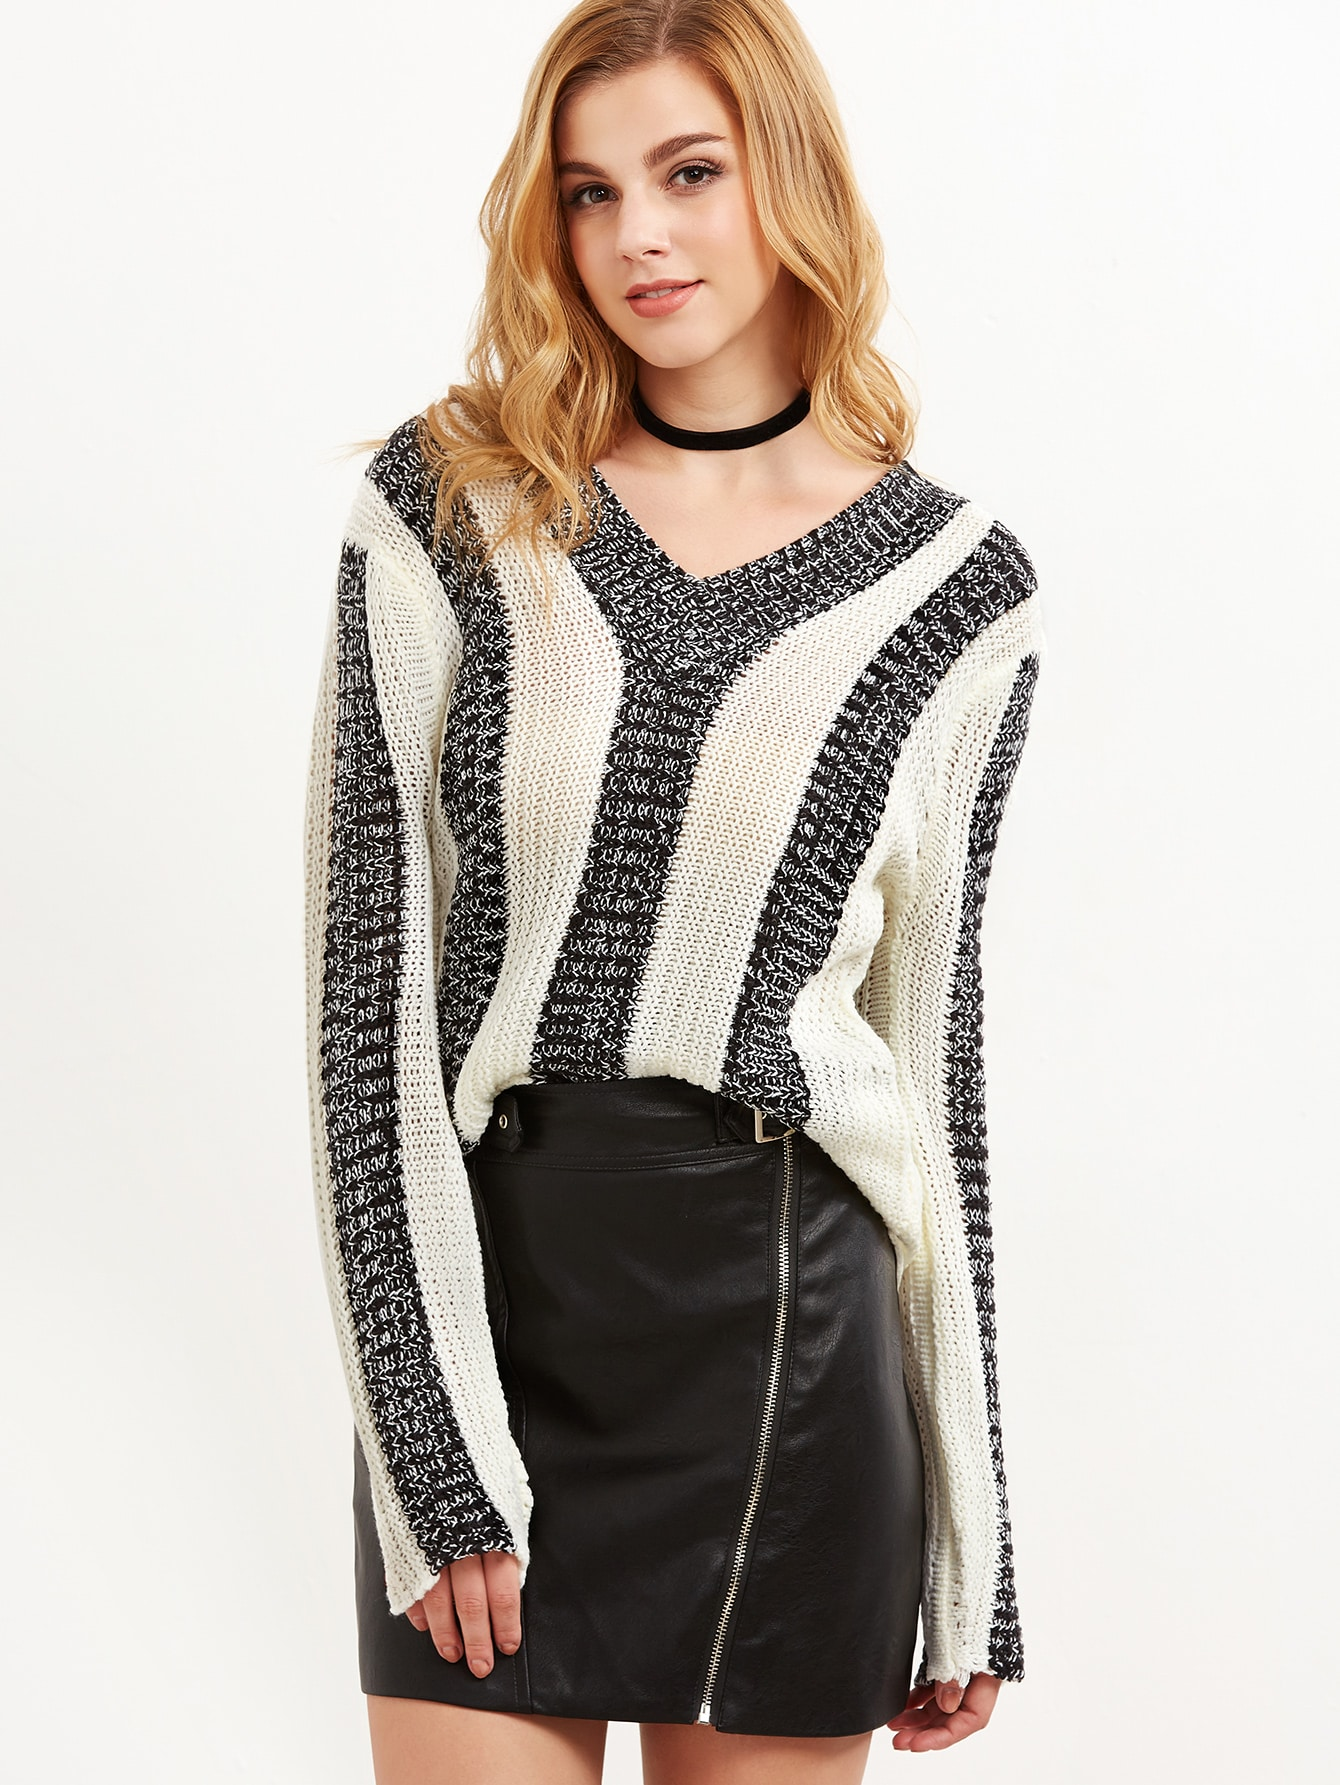 Contrast Marled Knit Vertical Striped Sweater sweater160929461